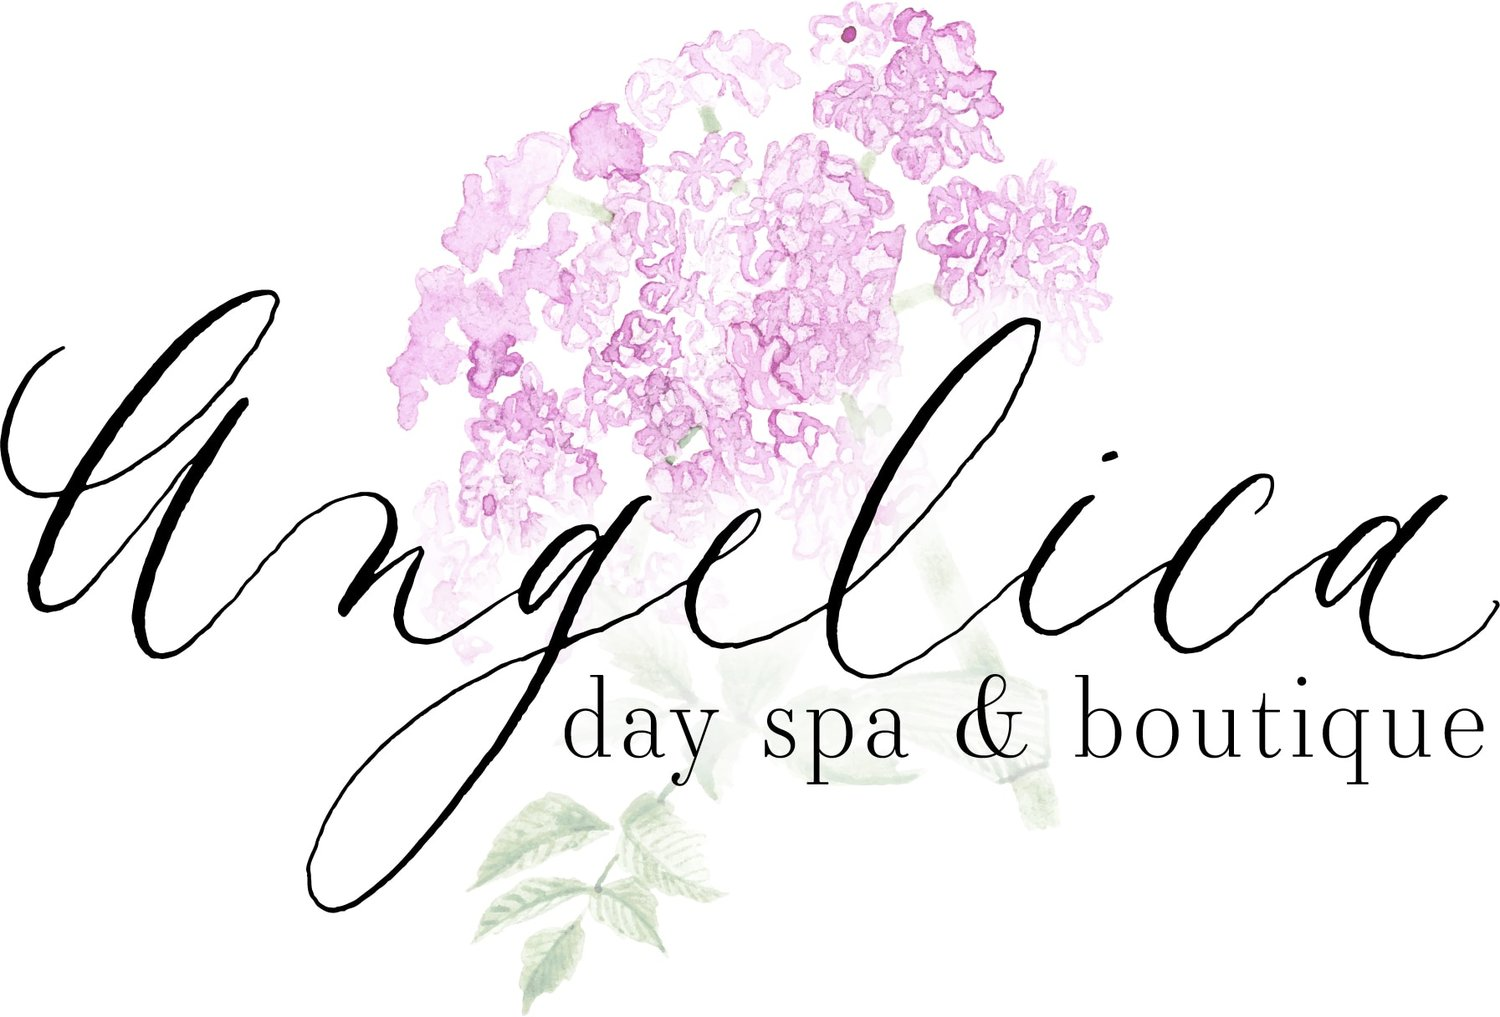 Angelica Day Spa & Boutique LLC